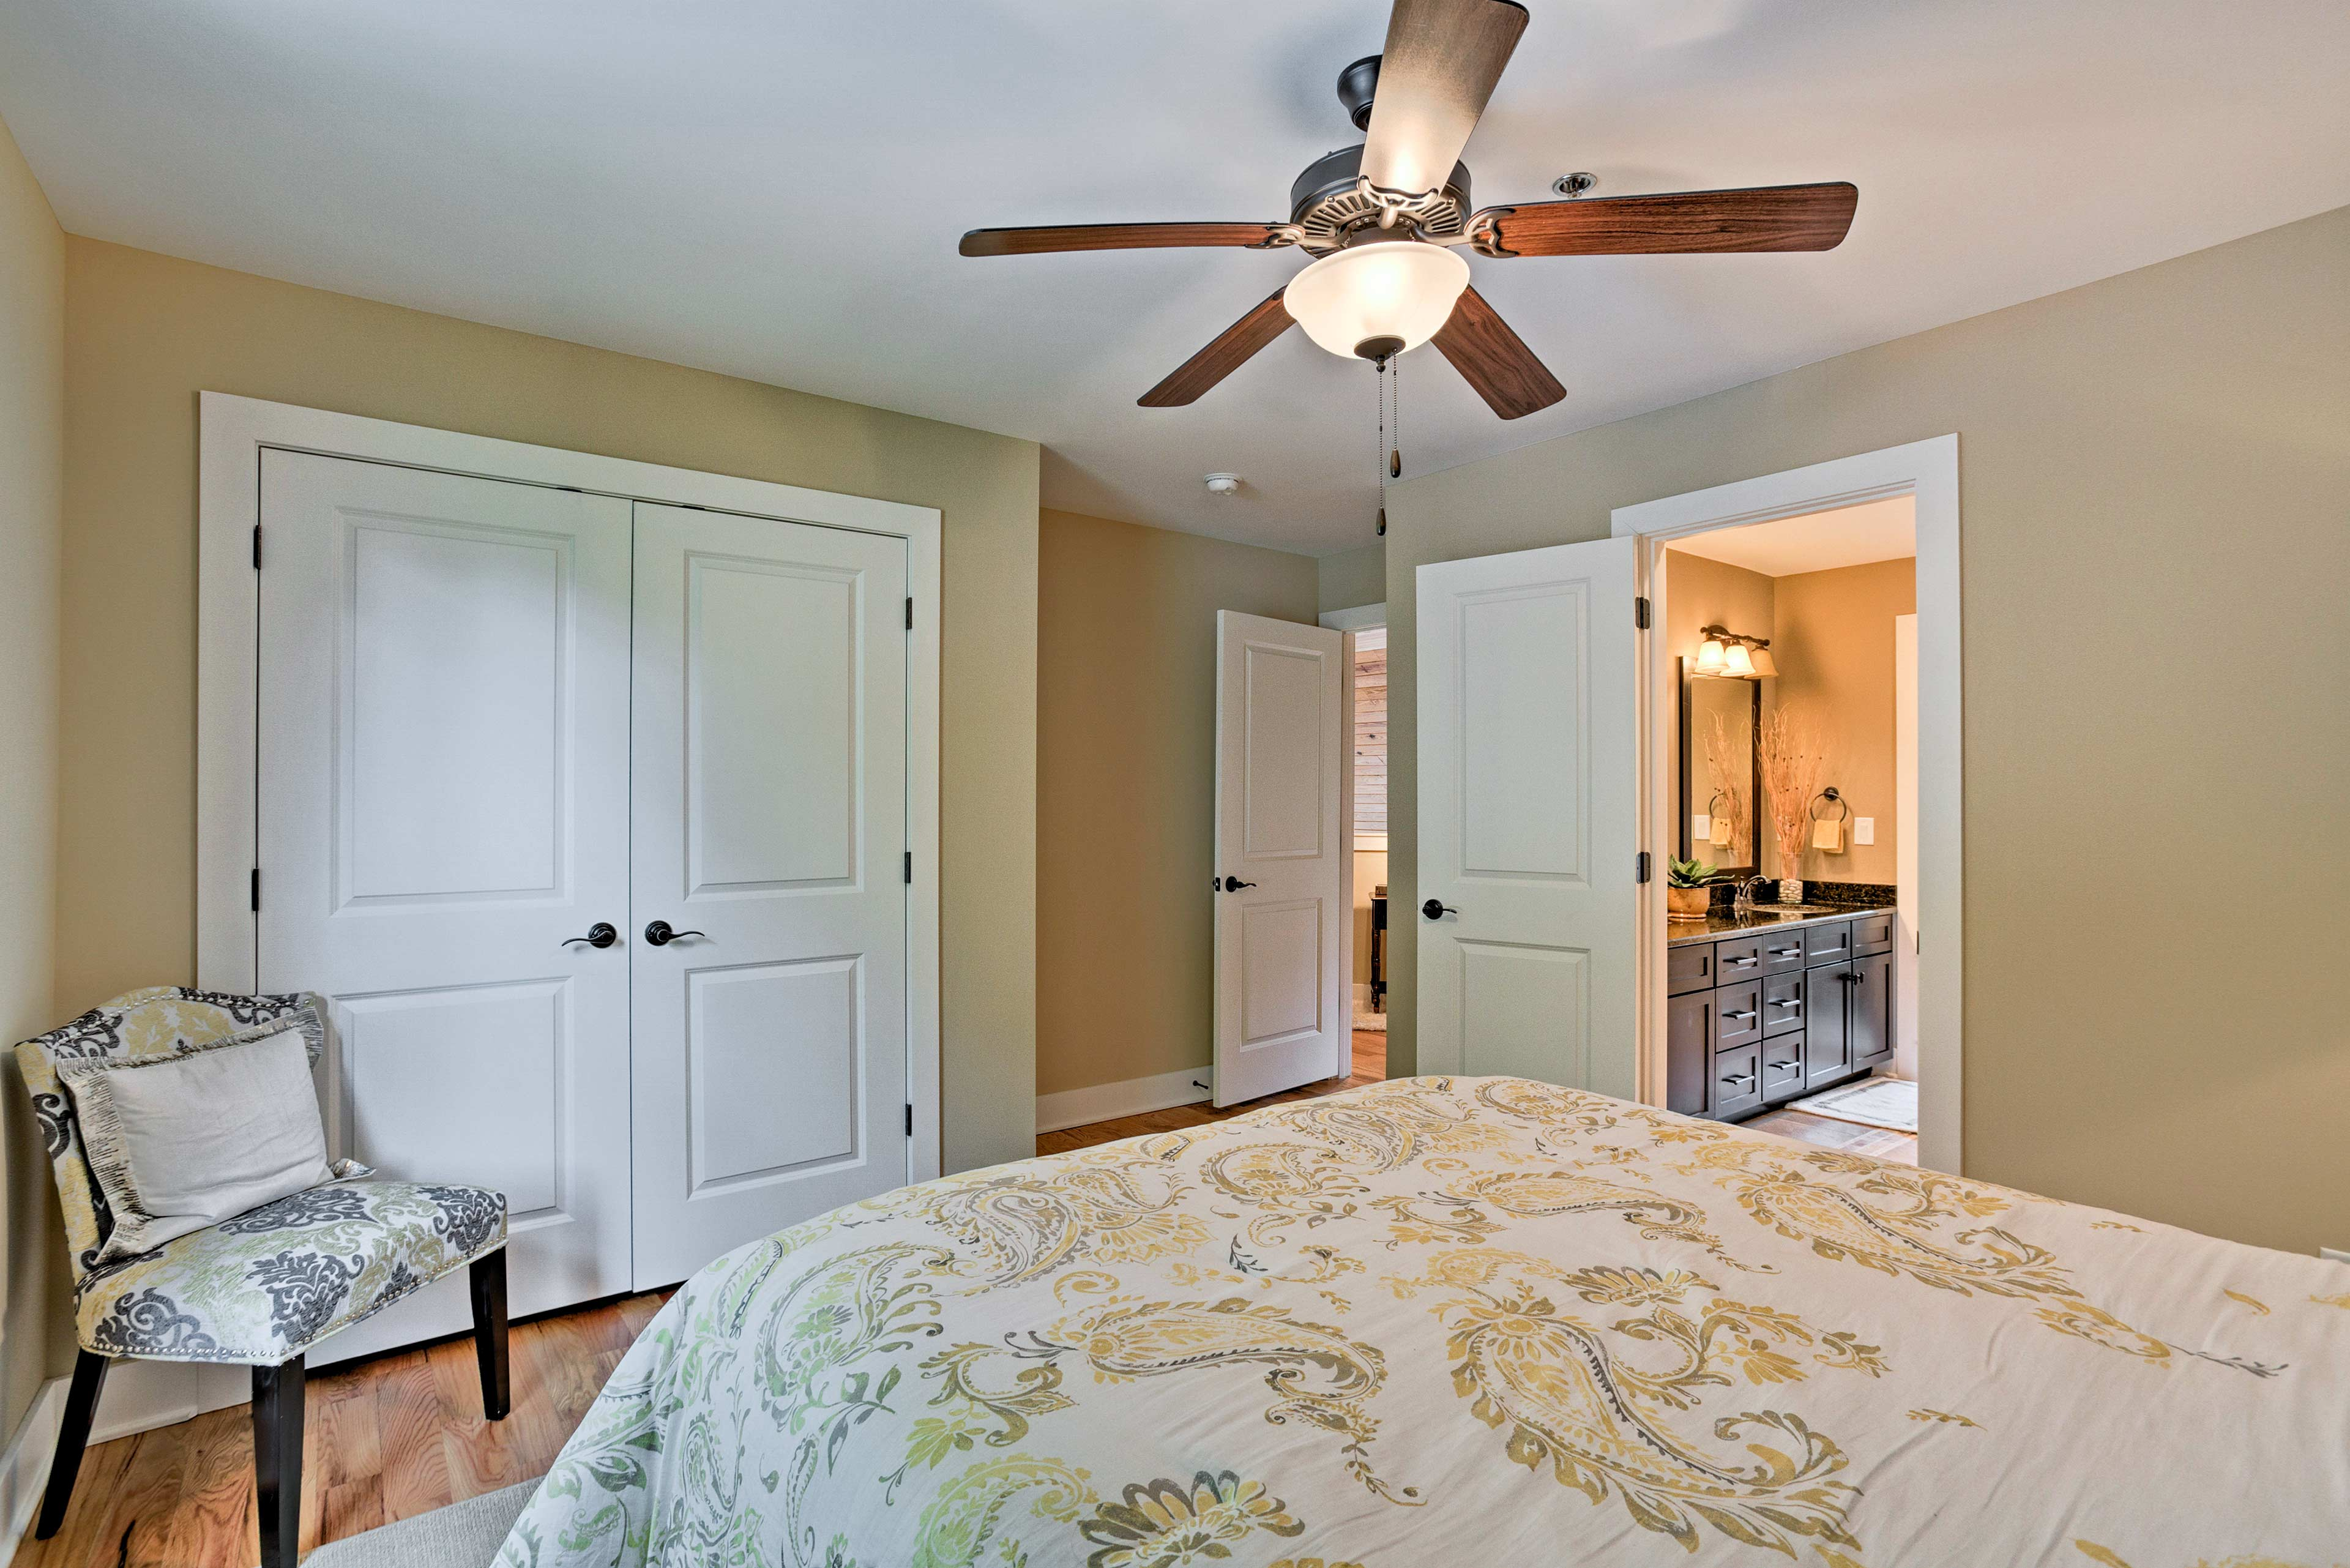 There's abundant closet space to store your belongings!